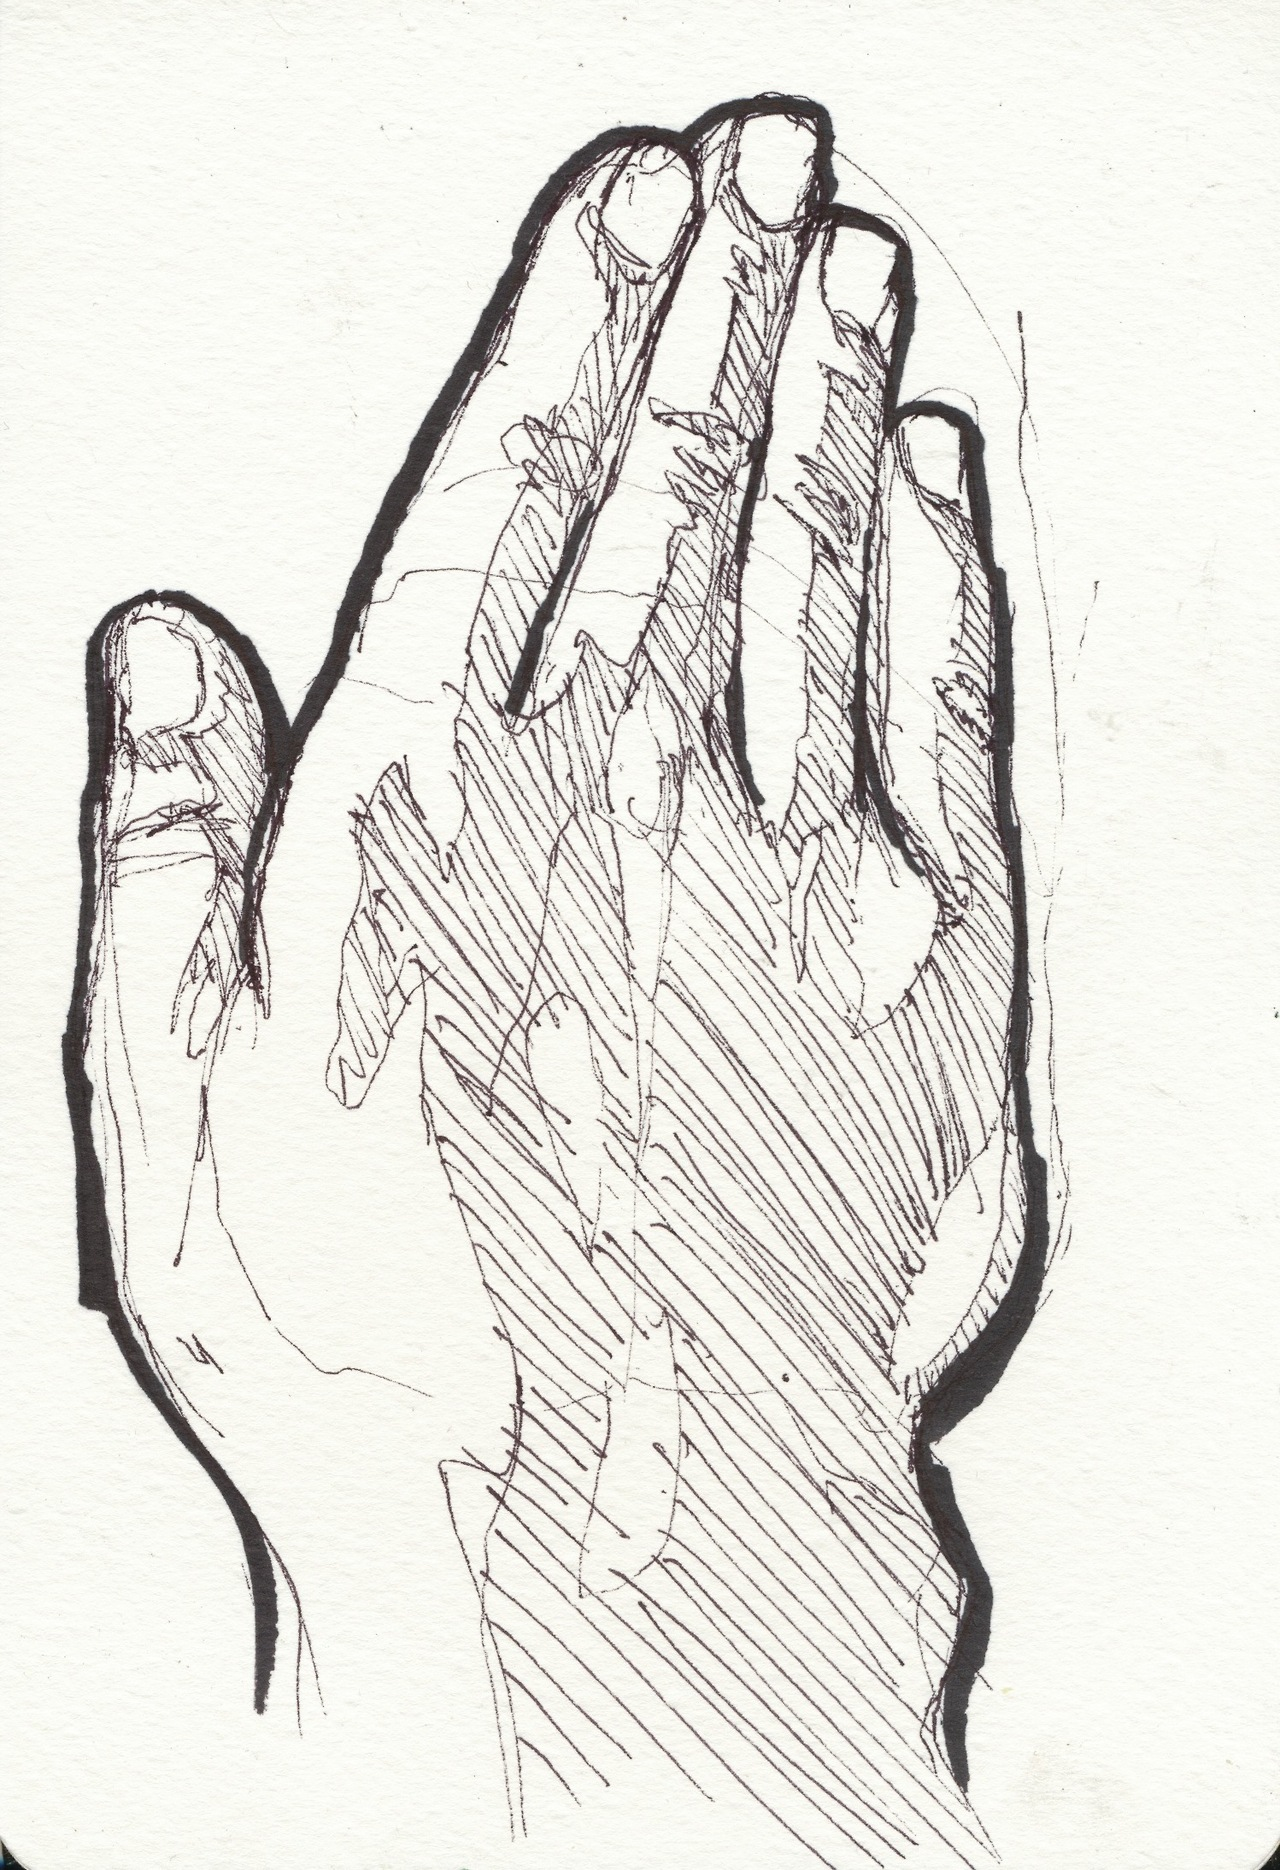 Hi, I've got a website now  thomaskirkeberg.com  check it out. In other news, I drew a hand.